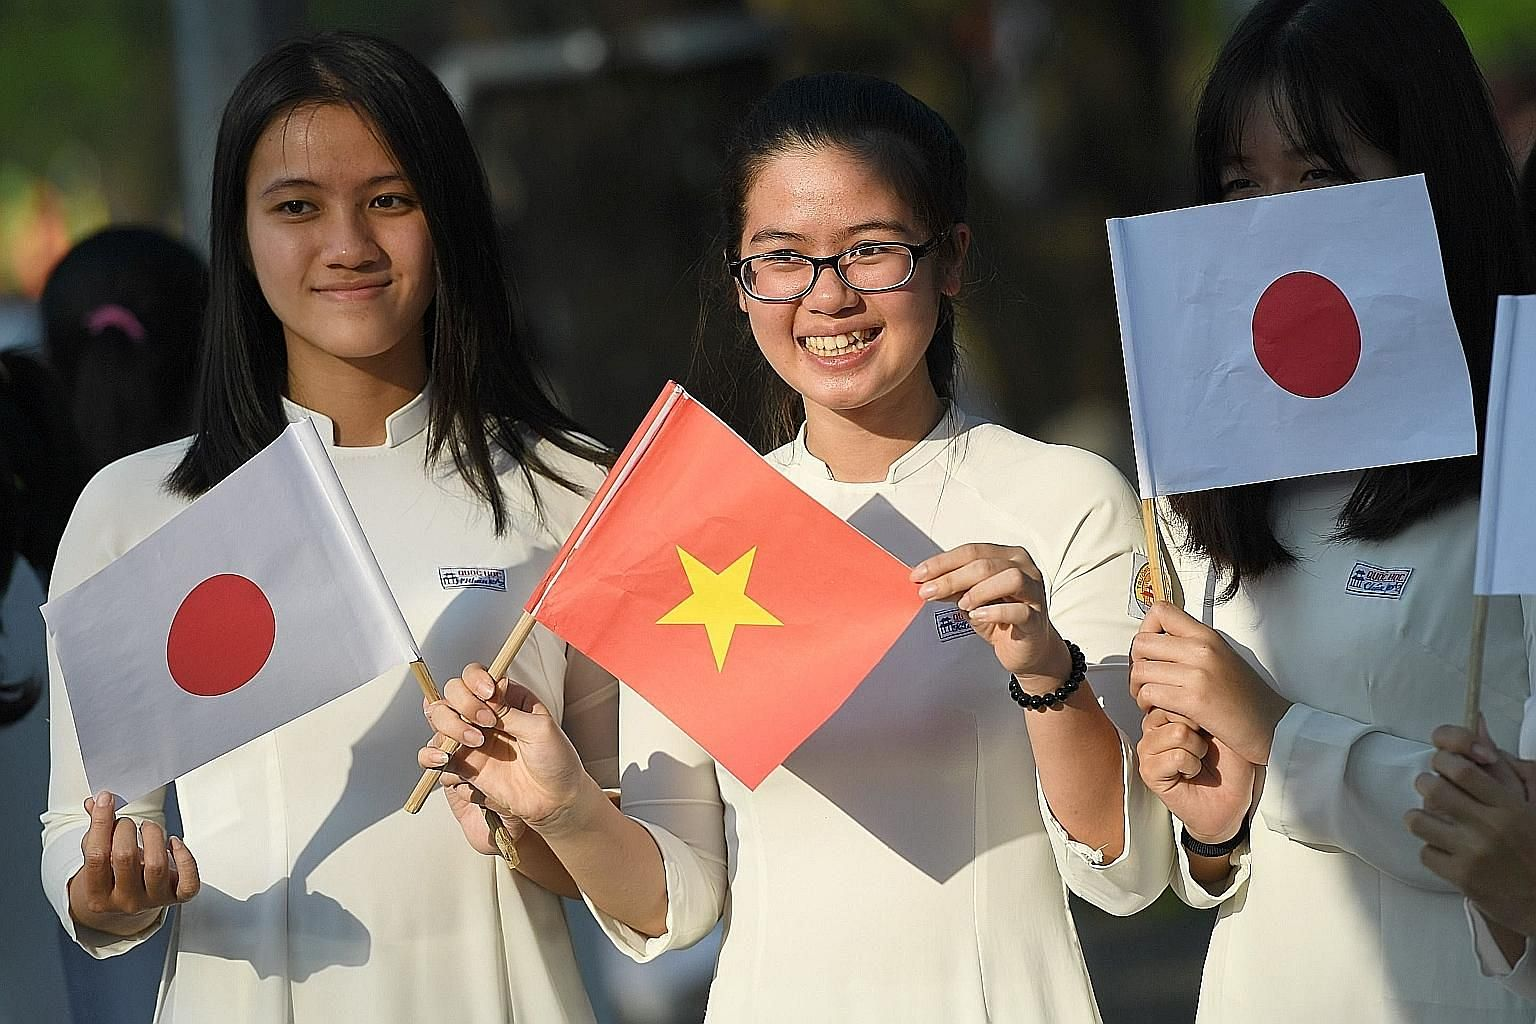 Students waiting on a street in Hue, Vietnam, to welcome Japan's Emperor Akihito and Empress Michiko during their March visit.